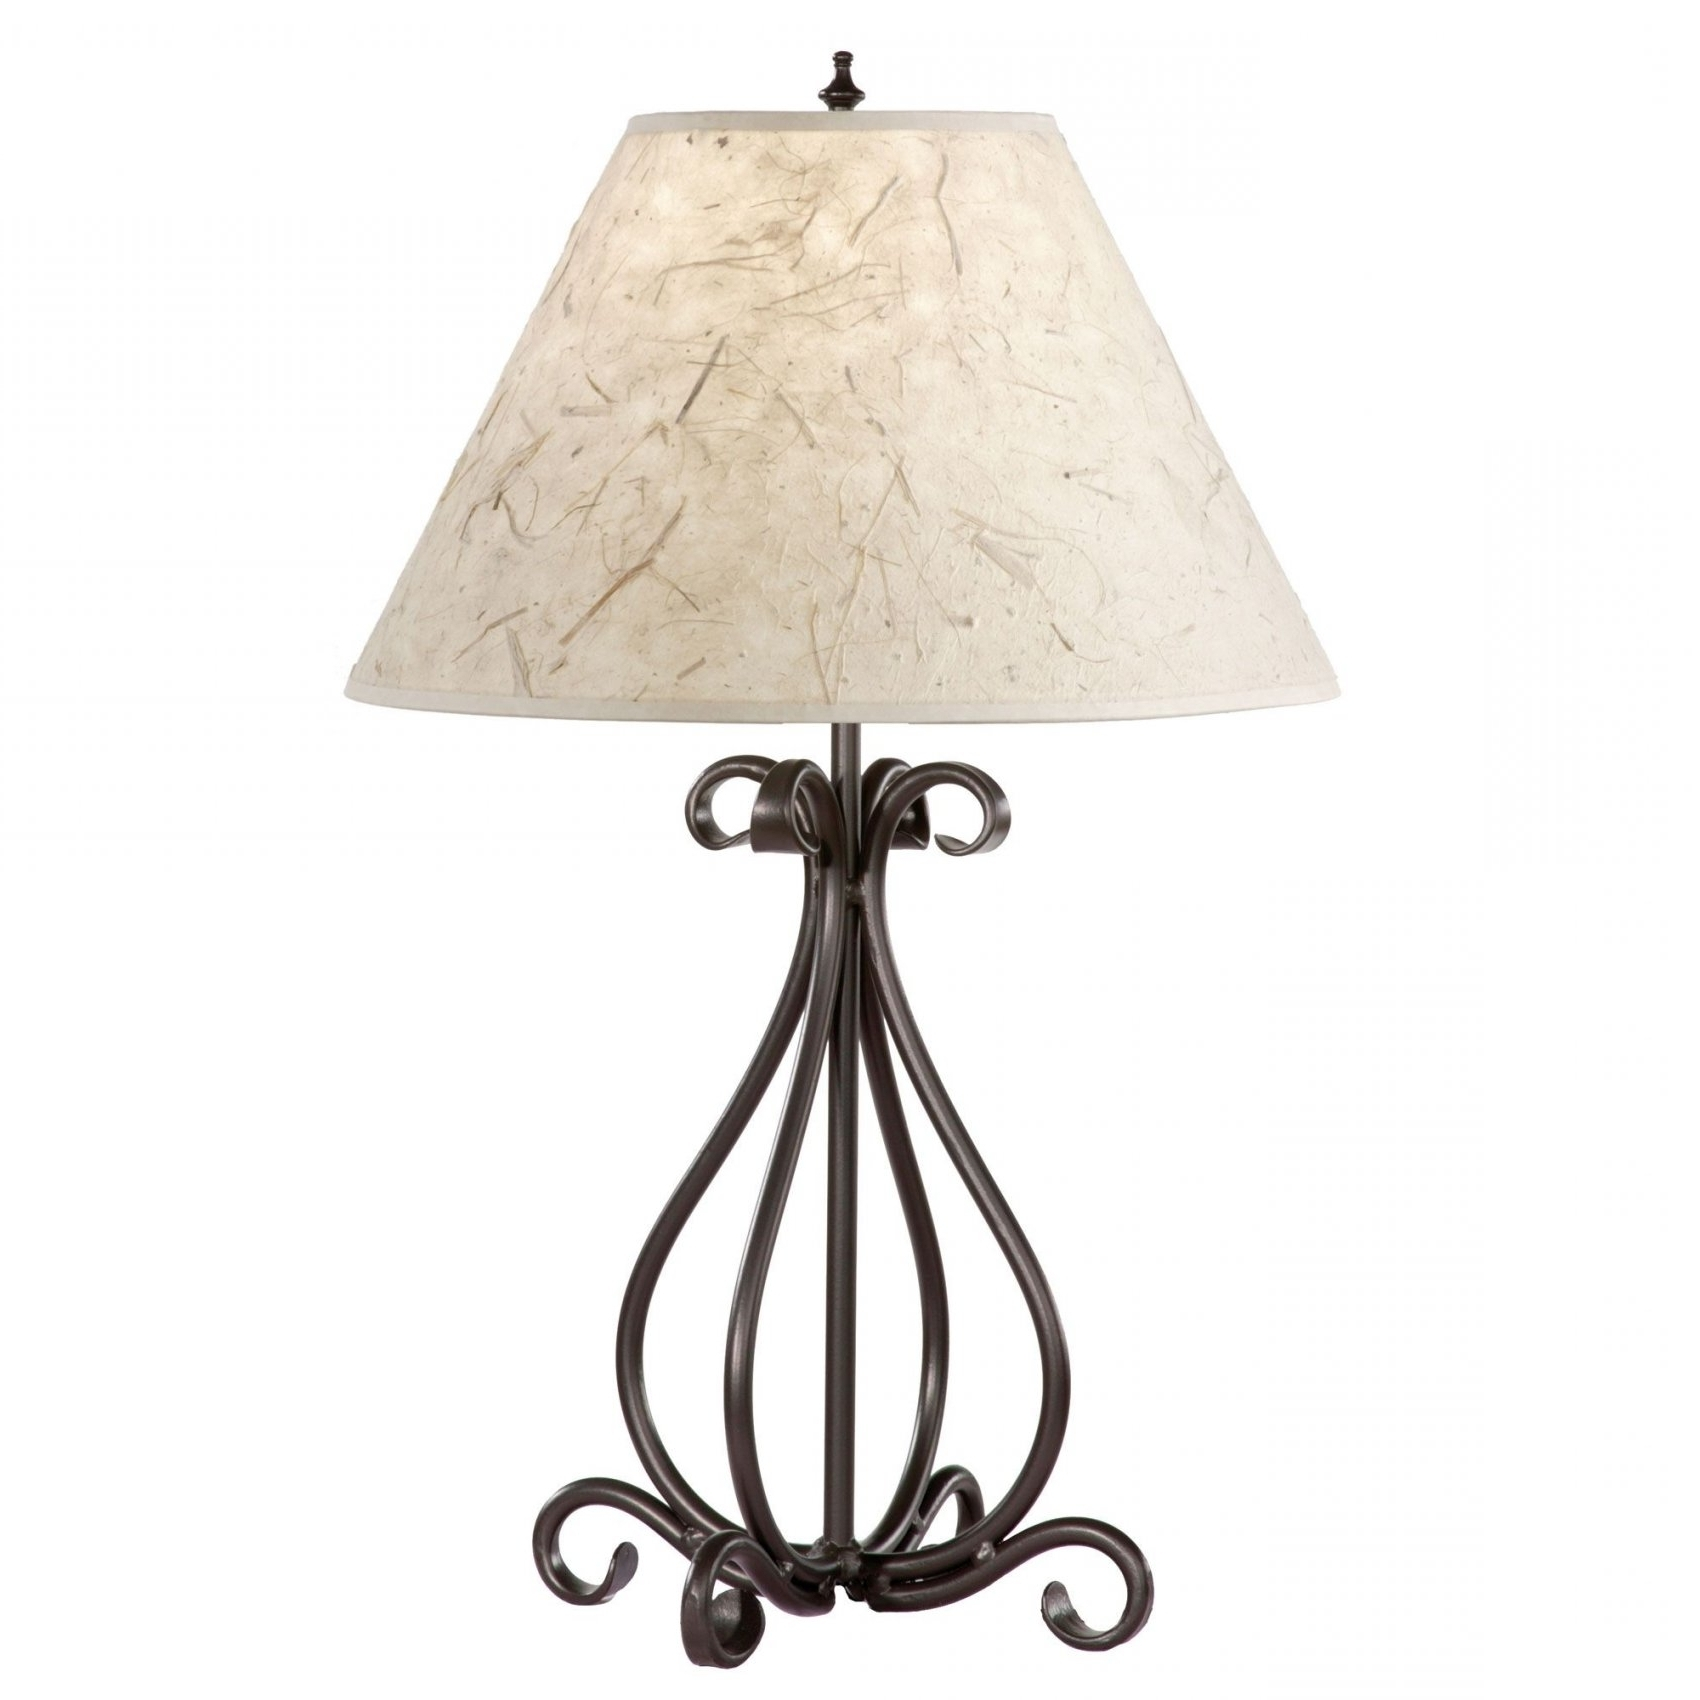 2017 Amazing Western Table Lamp Gunman And Products Image For Trends With Throughout Western Table Lamps For Living Room (View 3 of 15)